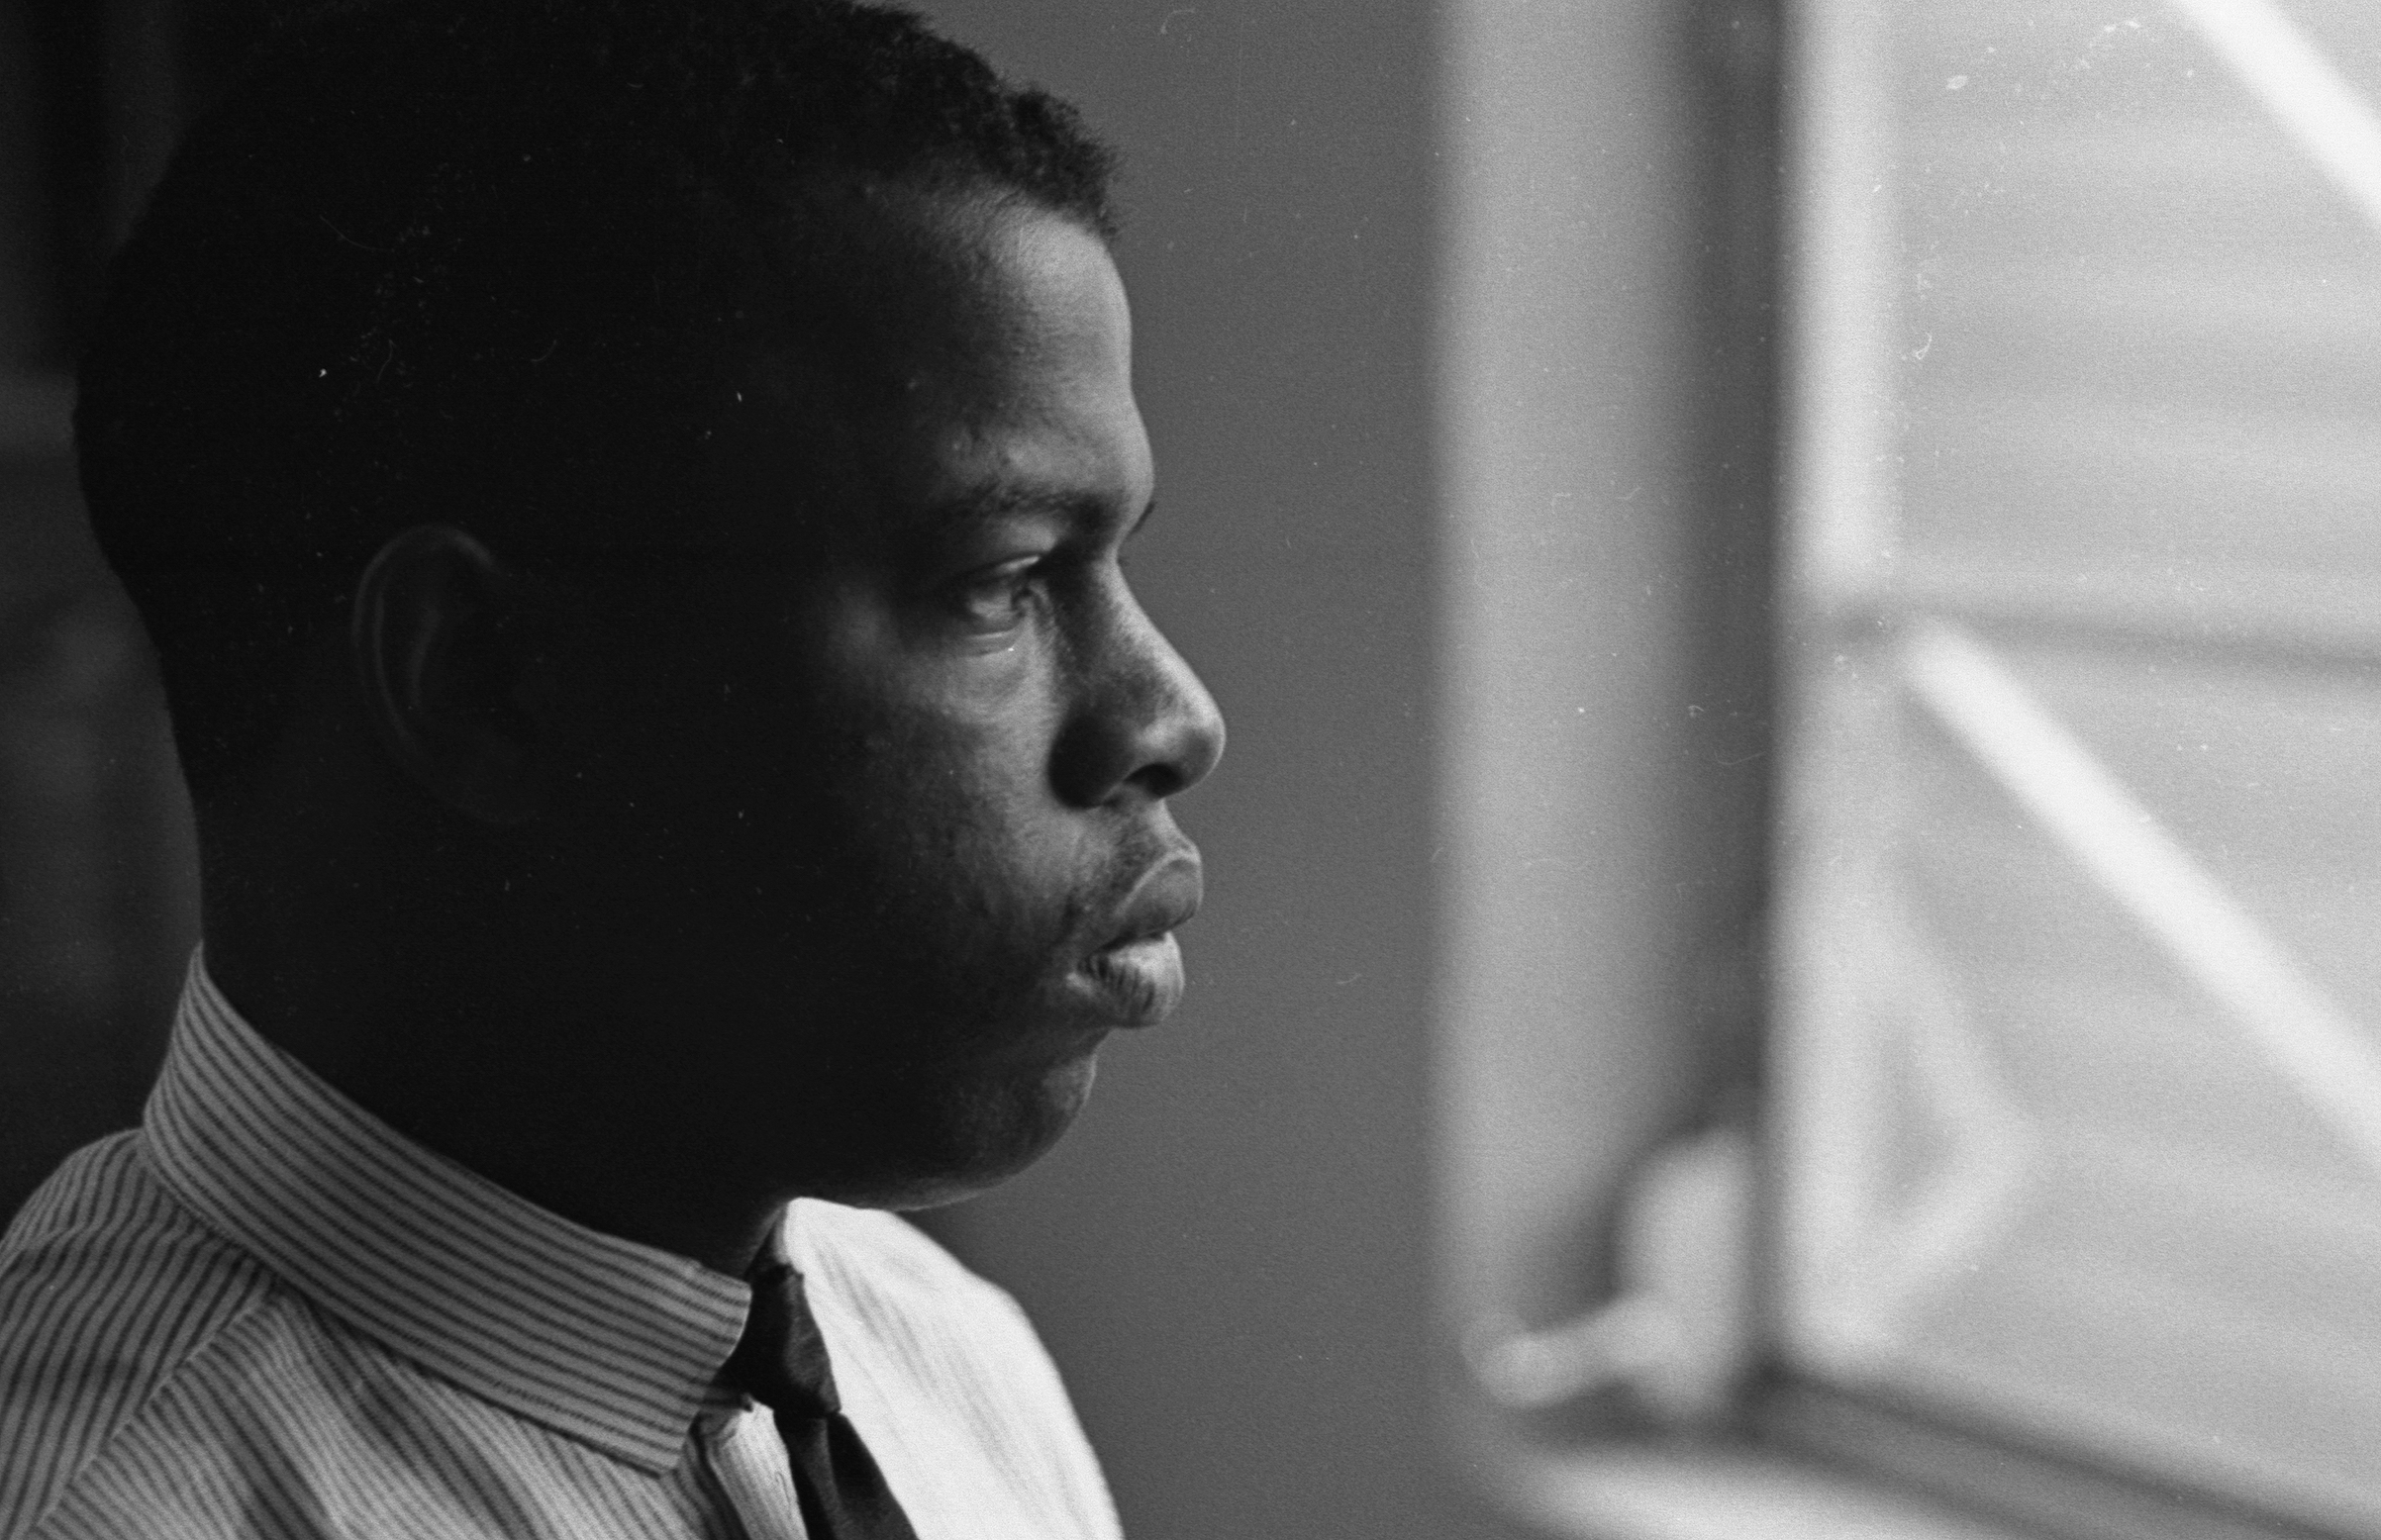 American Civil Rights activist (and future politician) John Lewis, chairman of the Student Non-Violent Coordinating Committee (SNCC), in an office in New York City, 1964.